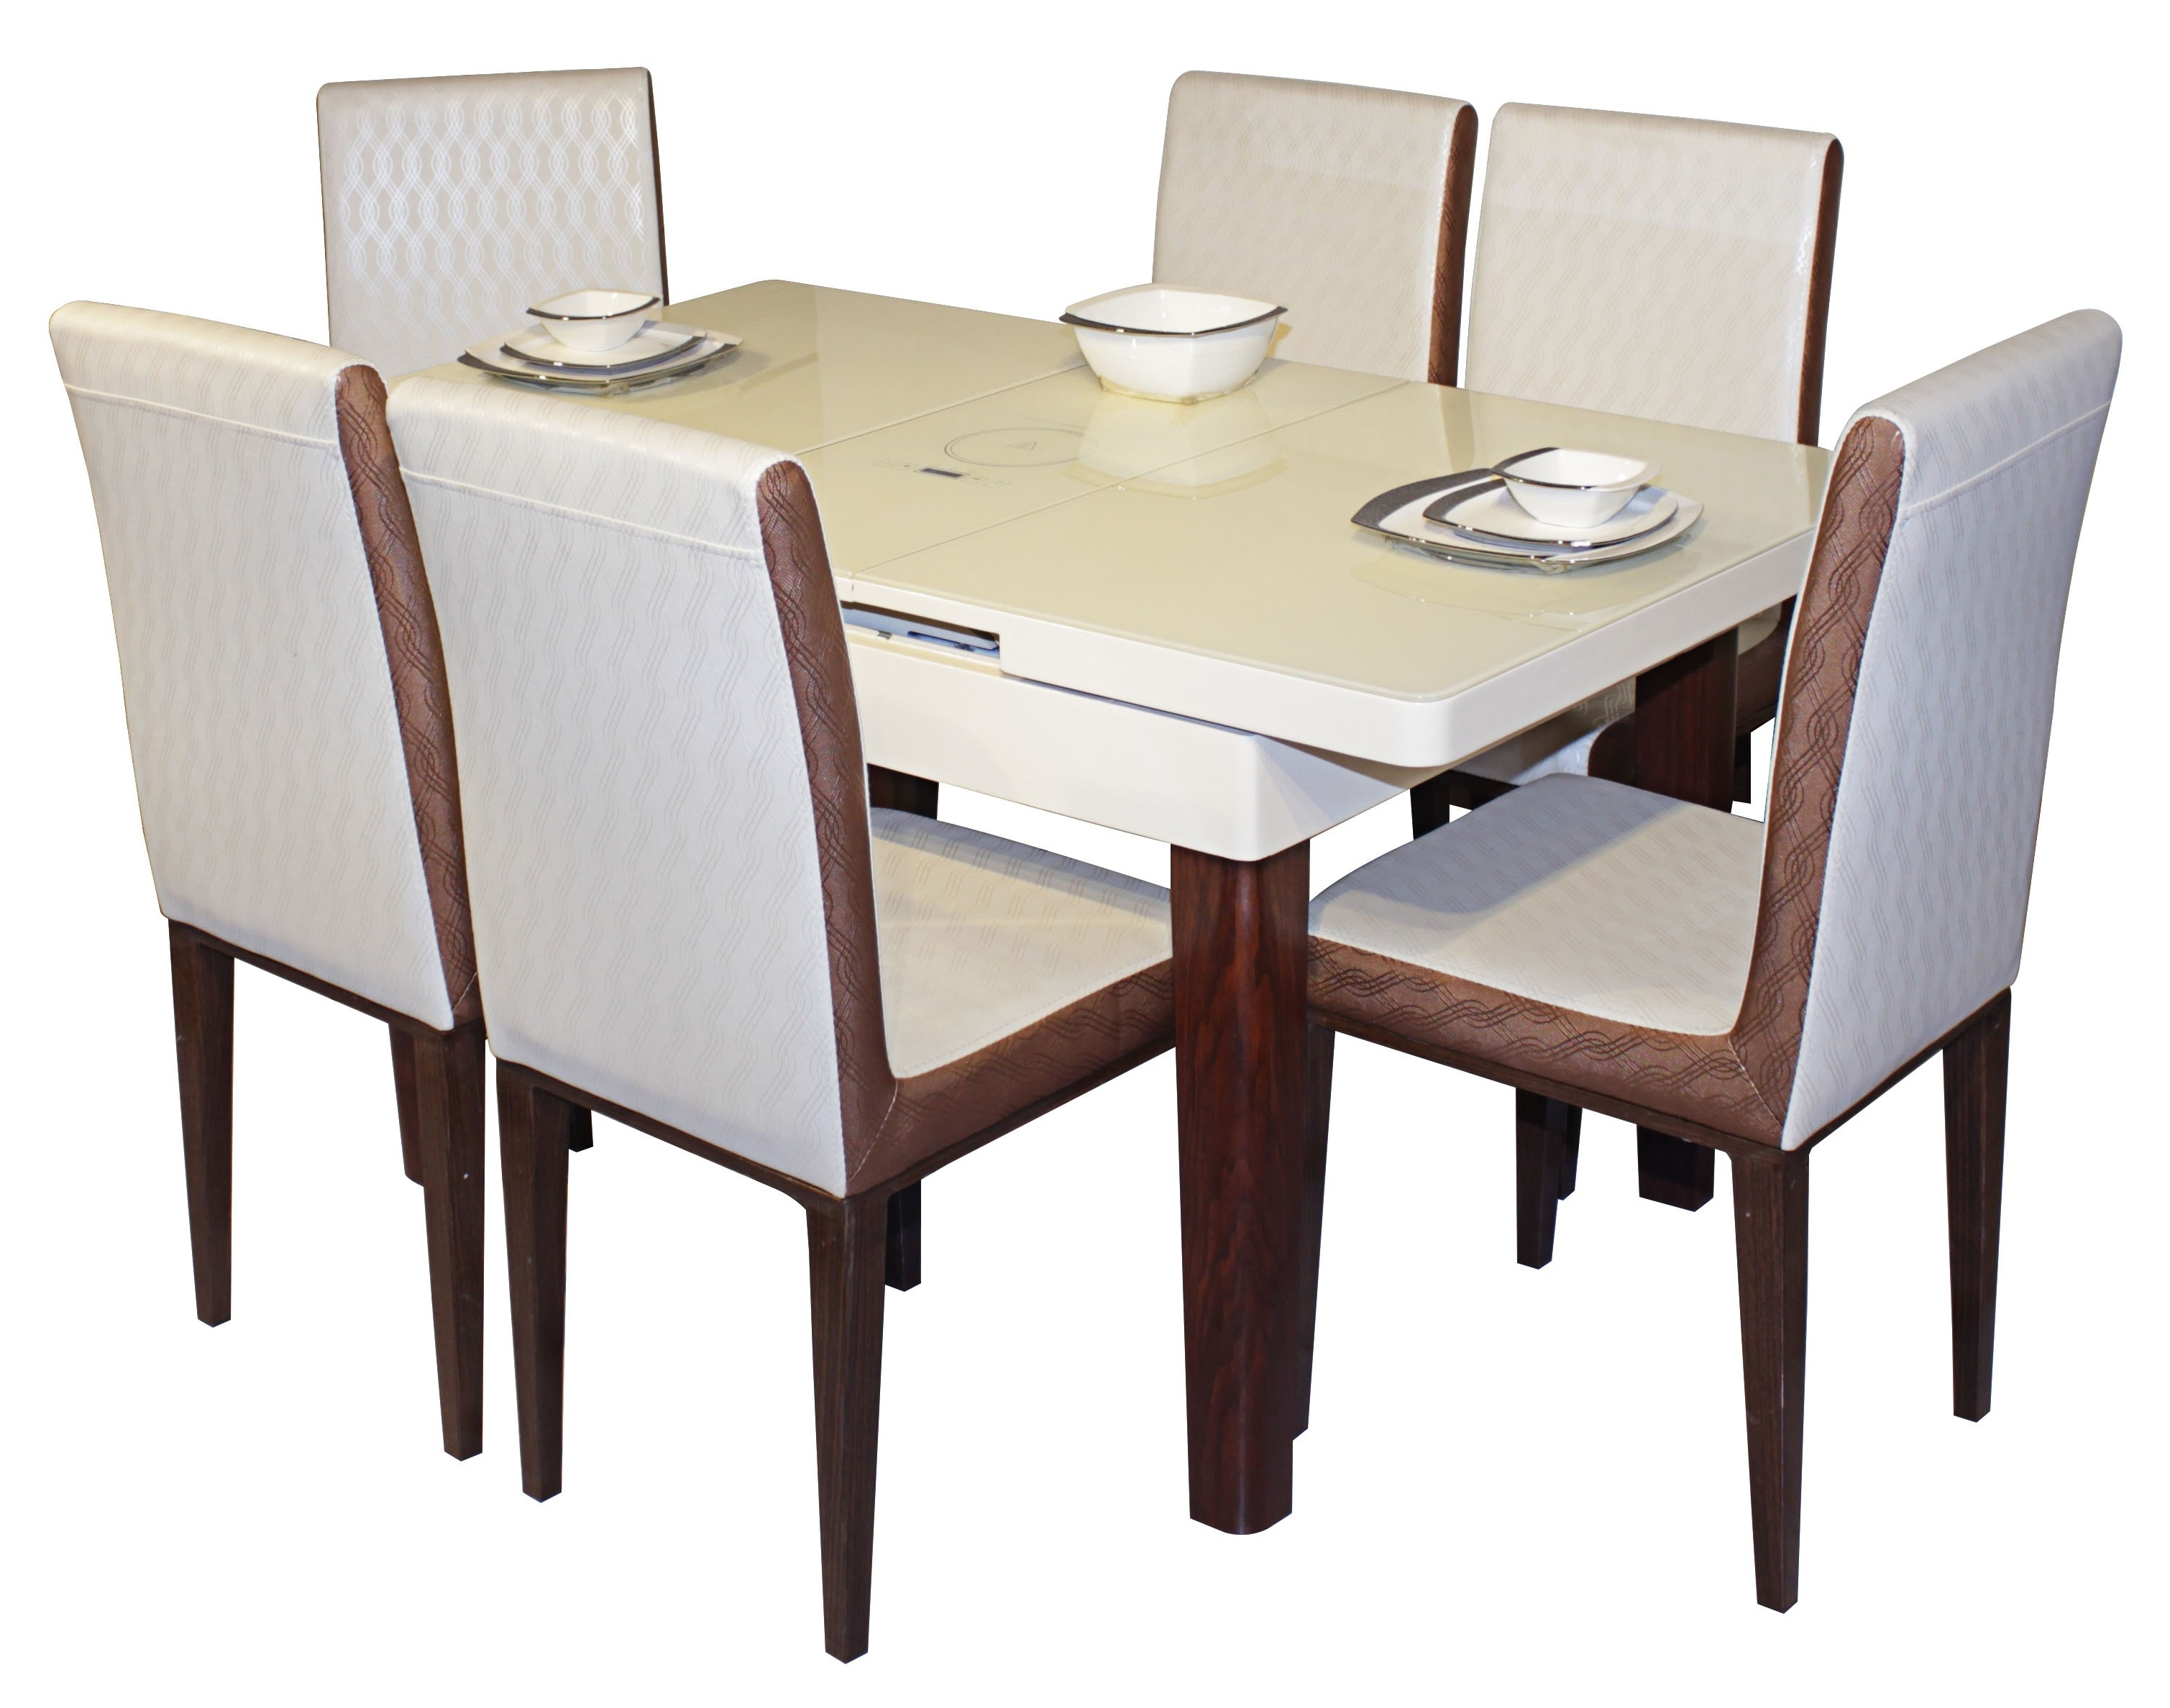 Galassia 6 Seater Dining Table Set Pertaining To Well Known 6 Seat Dining Tables And Chairs (View 10 of 25)